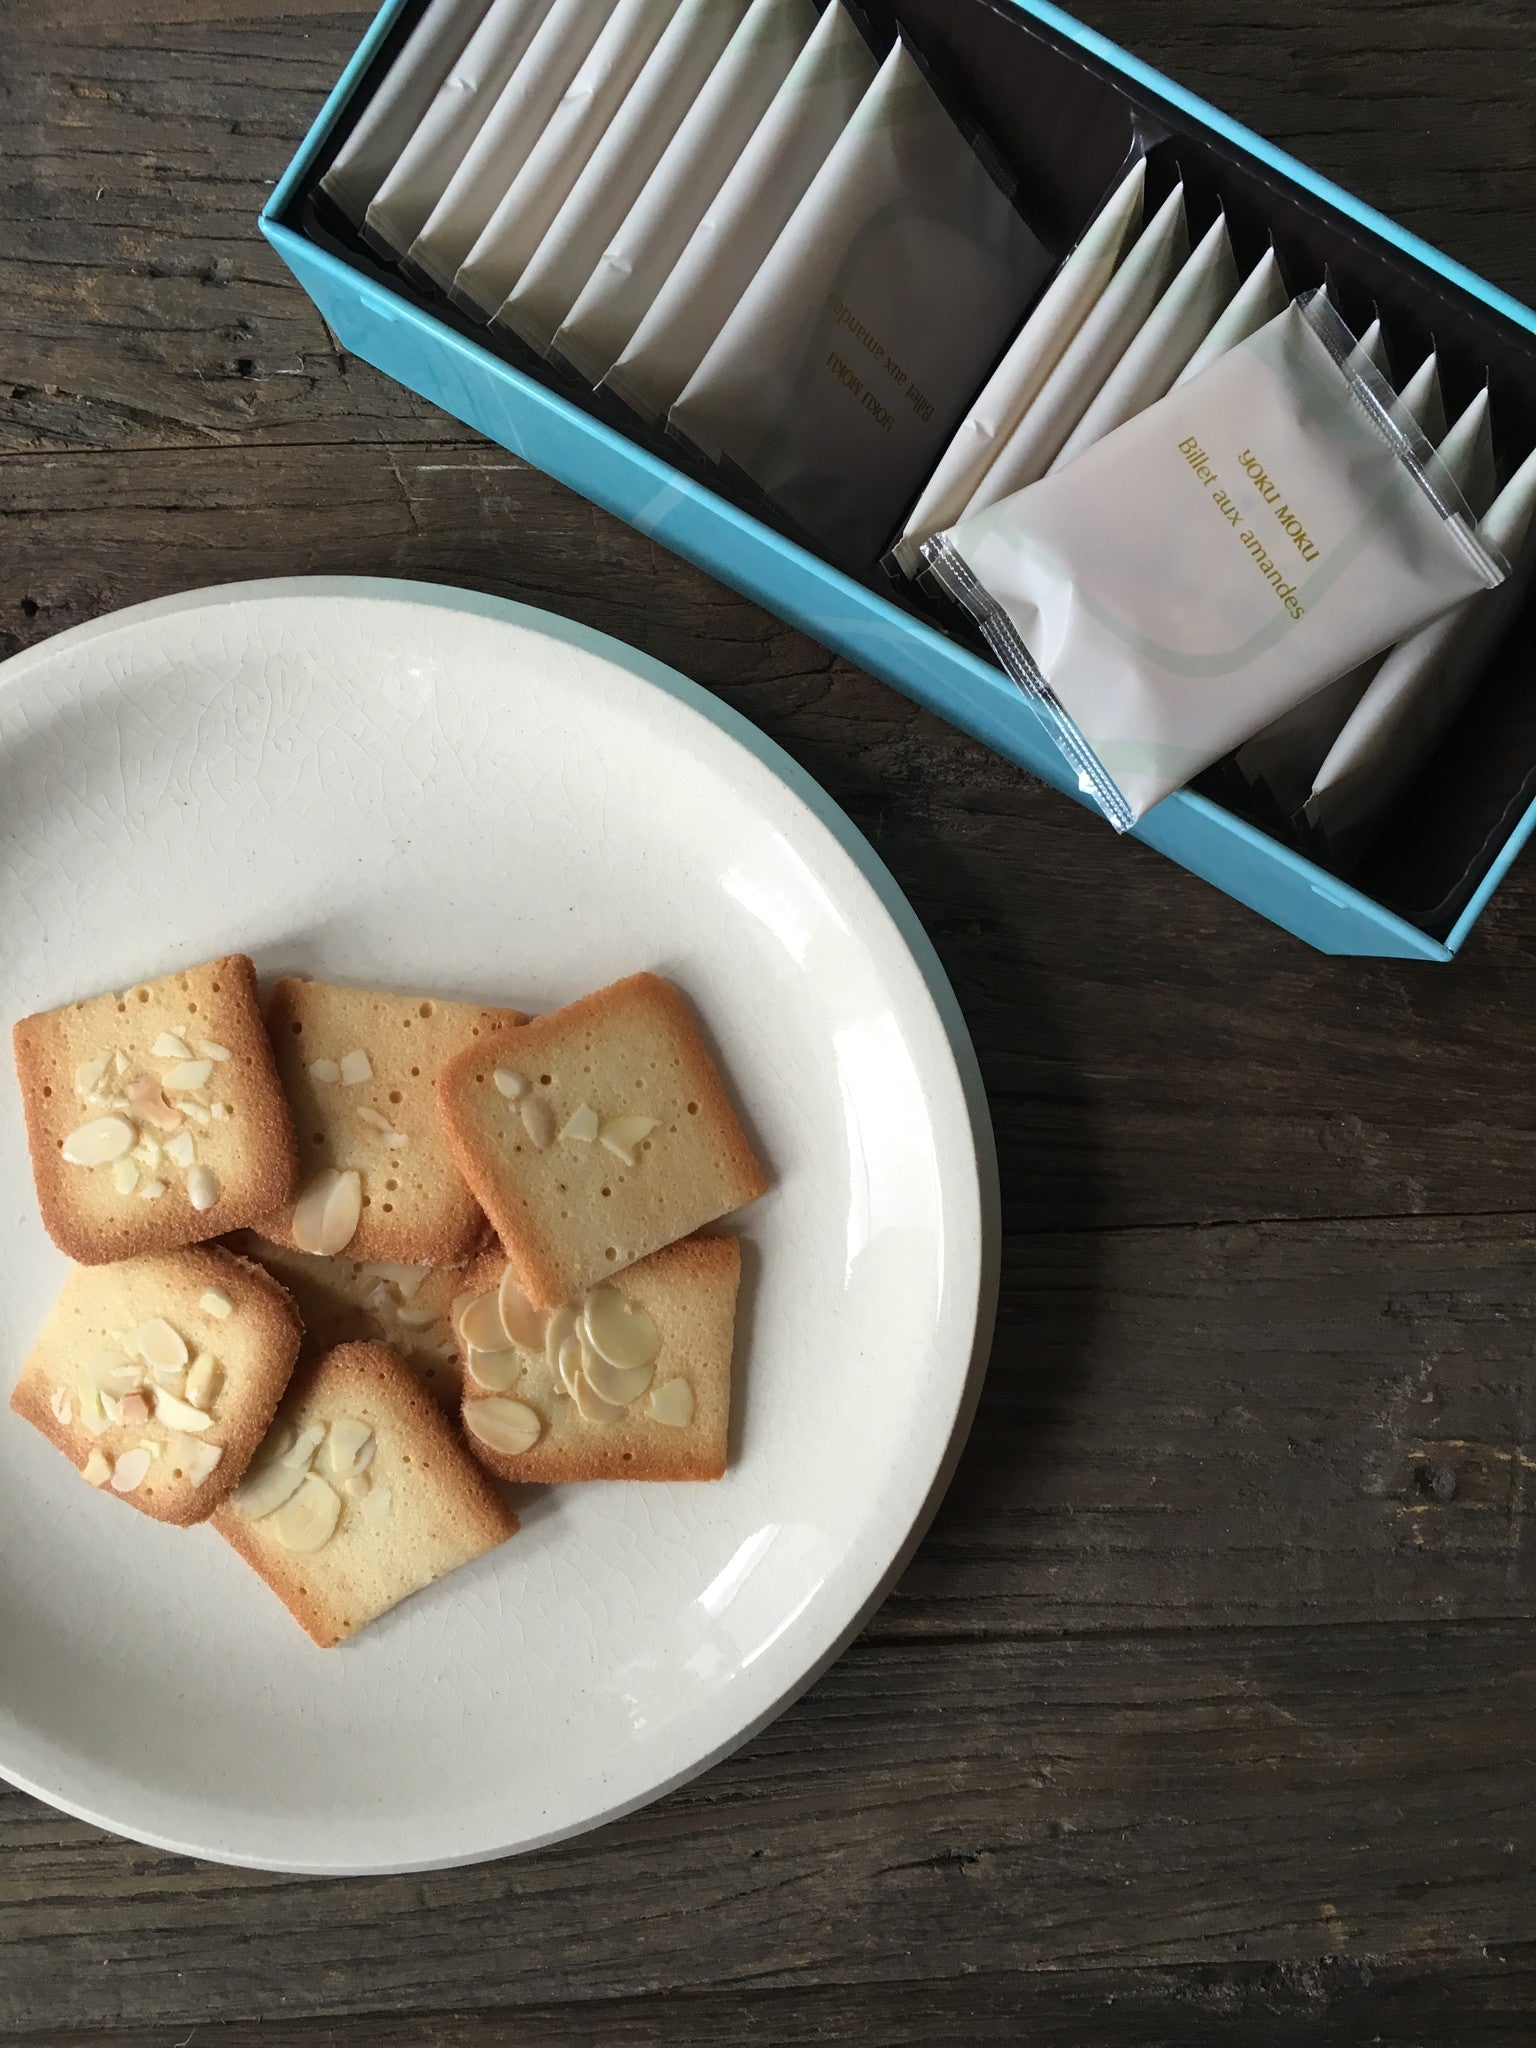 Yoku Moku Cookies - Billet Aux Amandes - rikumo japan made